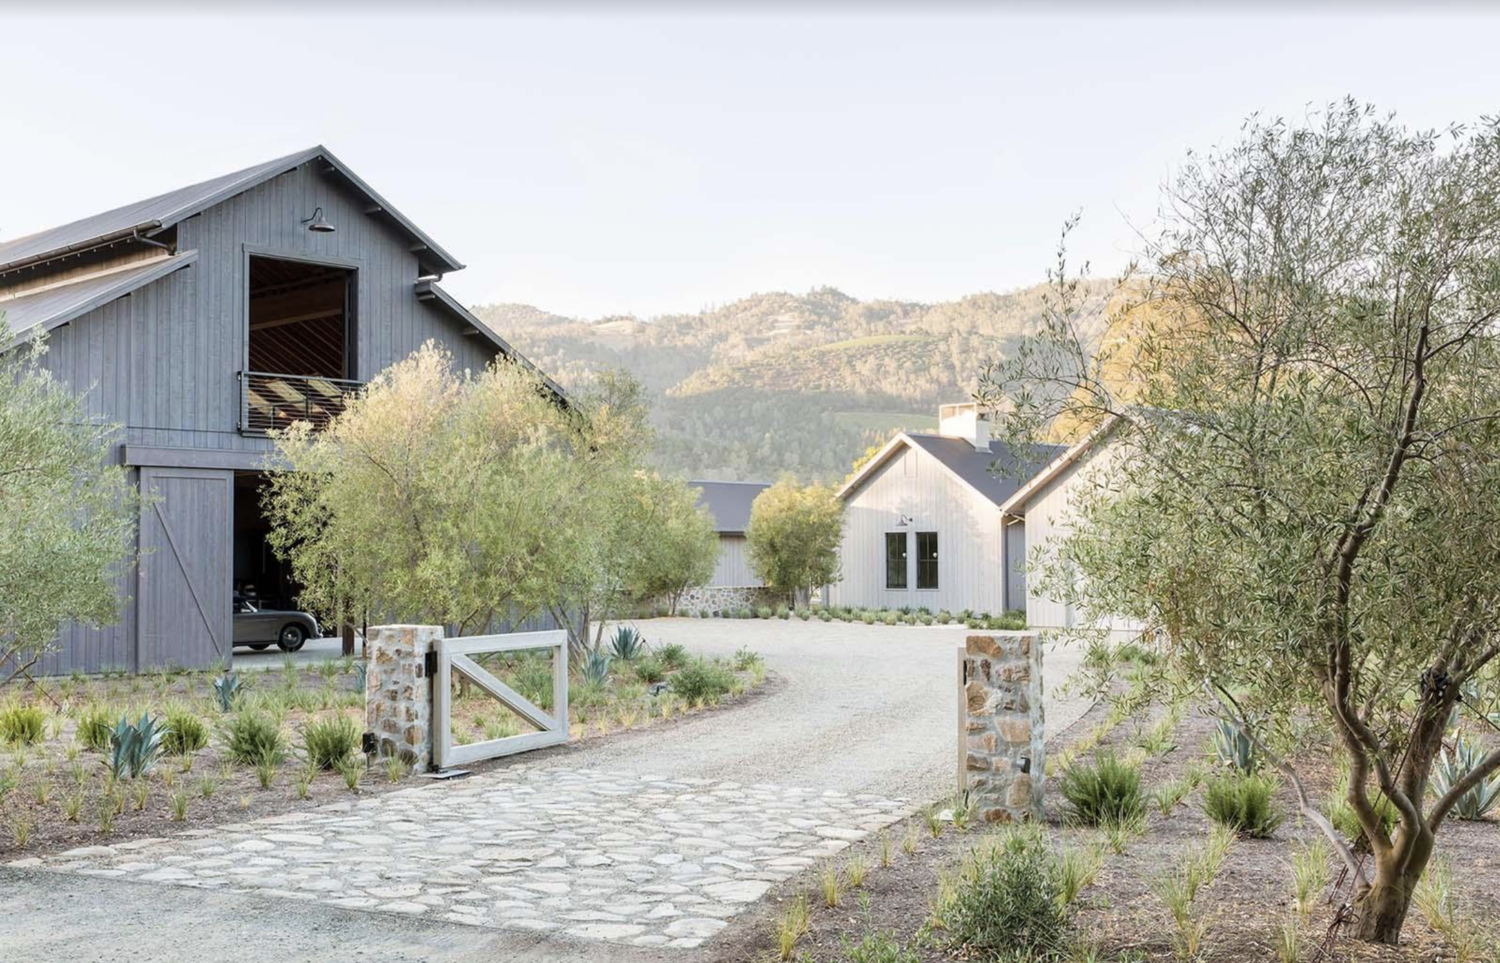 A welcoming entrance to the property is created using a simple stone and wood gate. As you look around, you'll quickly notice that the spacious plot of land this home was built on includes not only an attached garage, but also a two-story barn for added storage. Both structures are cladded vertically, softening the facades and adding to their visual height. The designers and builders of this project collaborated with a dedicated landscaper to complete the stunning greenery surrounding the home which perfectly compliments the backdrop of rolling hills.